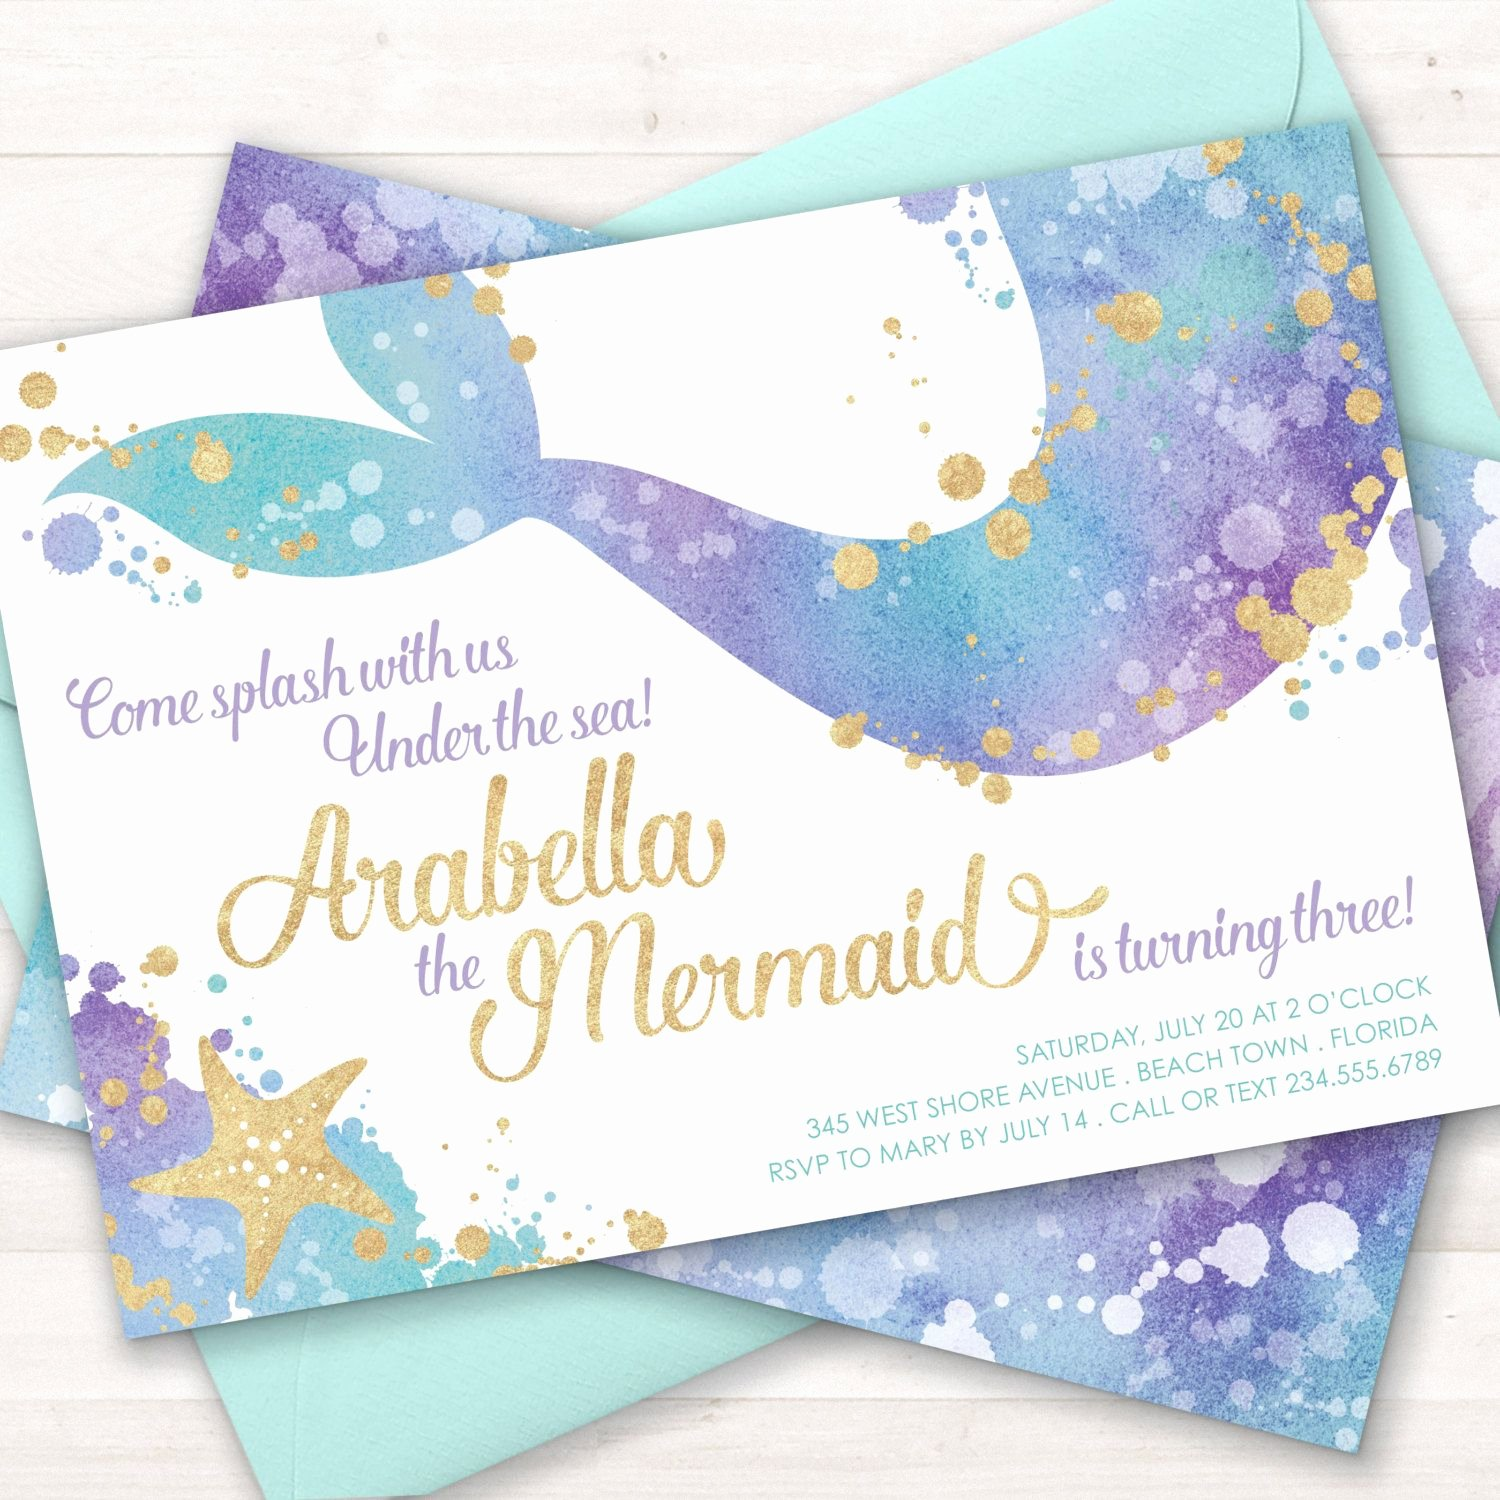 Mermaid Birthday Invitation Templates New Mermaid Invitation Mermaid Party Invite Under the Sea